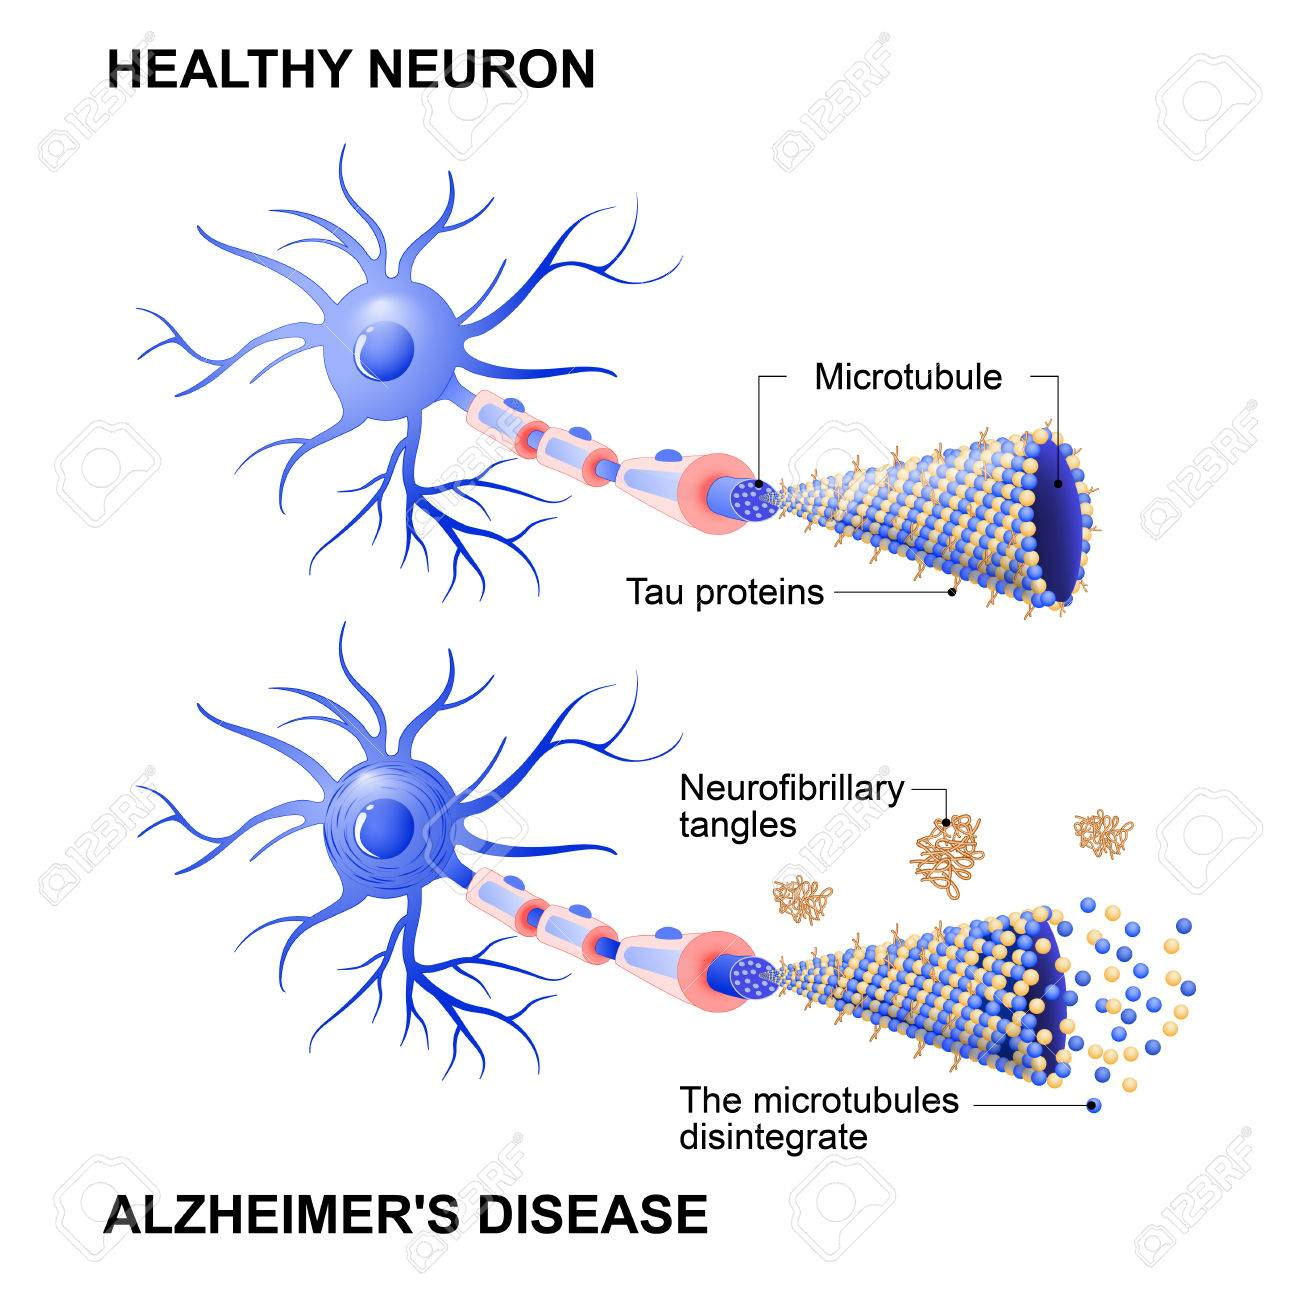 Alzheimer's disease is the change in tau protein that results in the breakdown of microtubules in brain cells. Mechanism of disease. Diagram shows two neurons: healthy cell and neuron with Alzheimer's disease. Tau hypothesis. Neurofibrillary tangles - 72304407